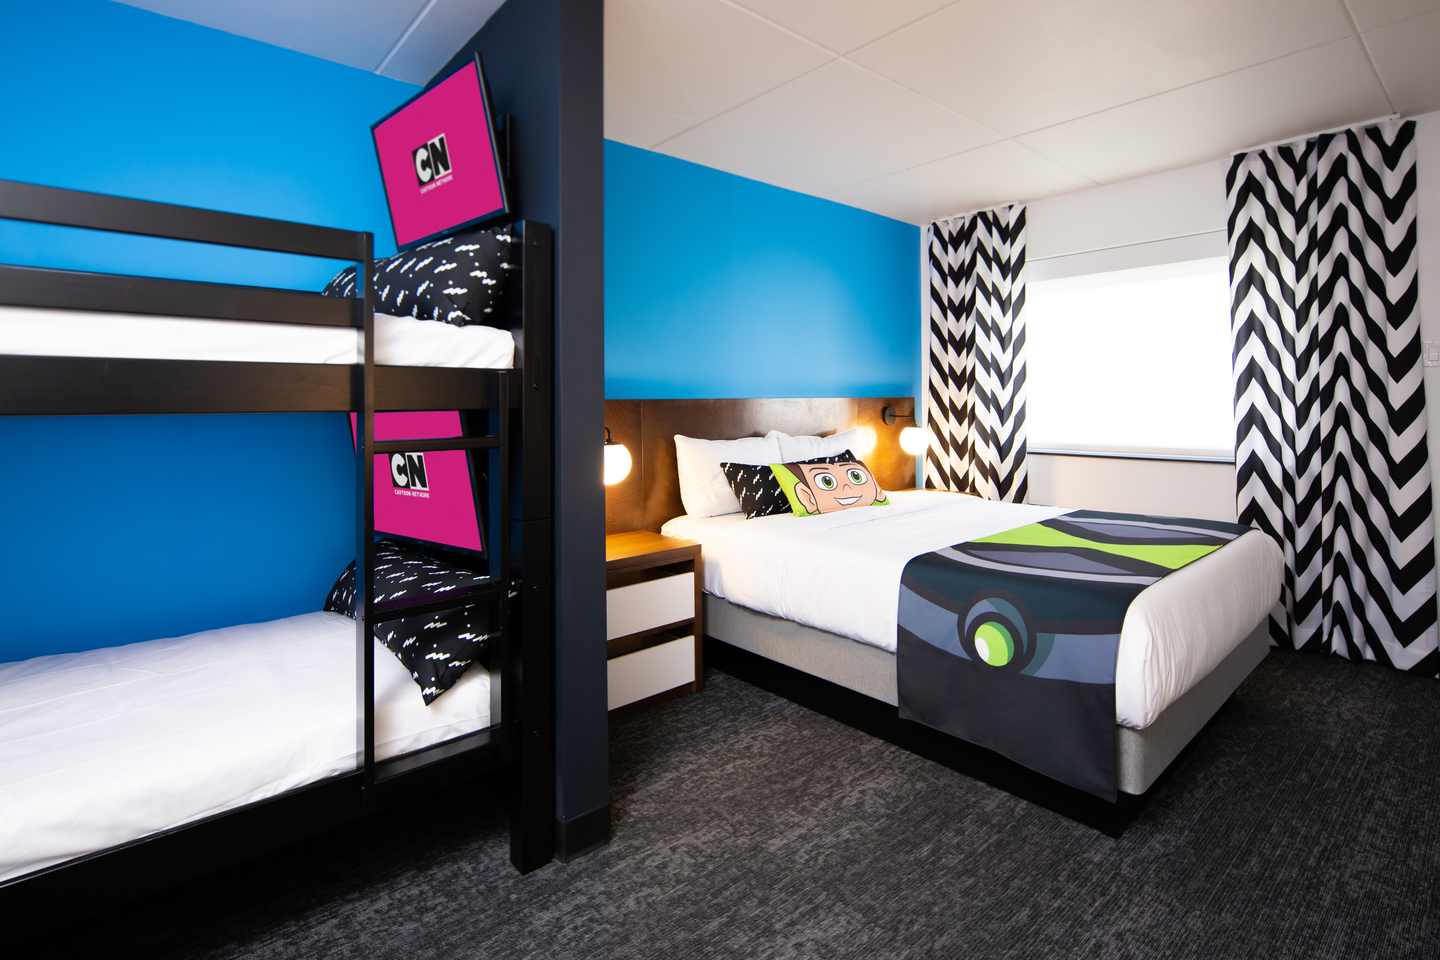 A hotel room with bunk beds and a queen bed in the background